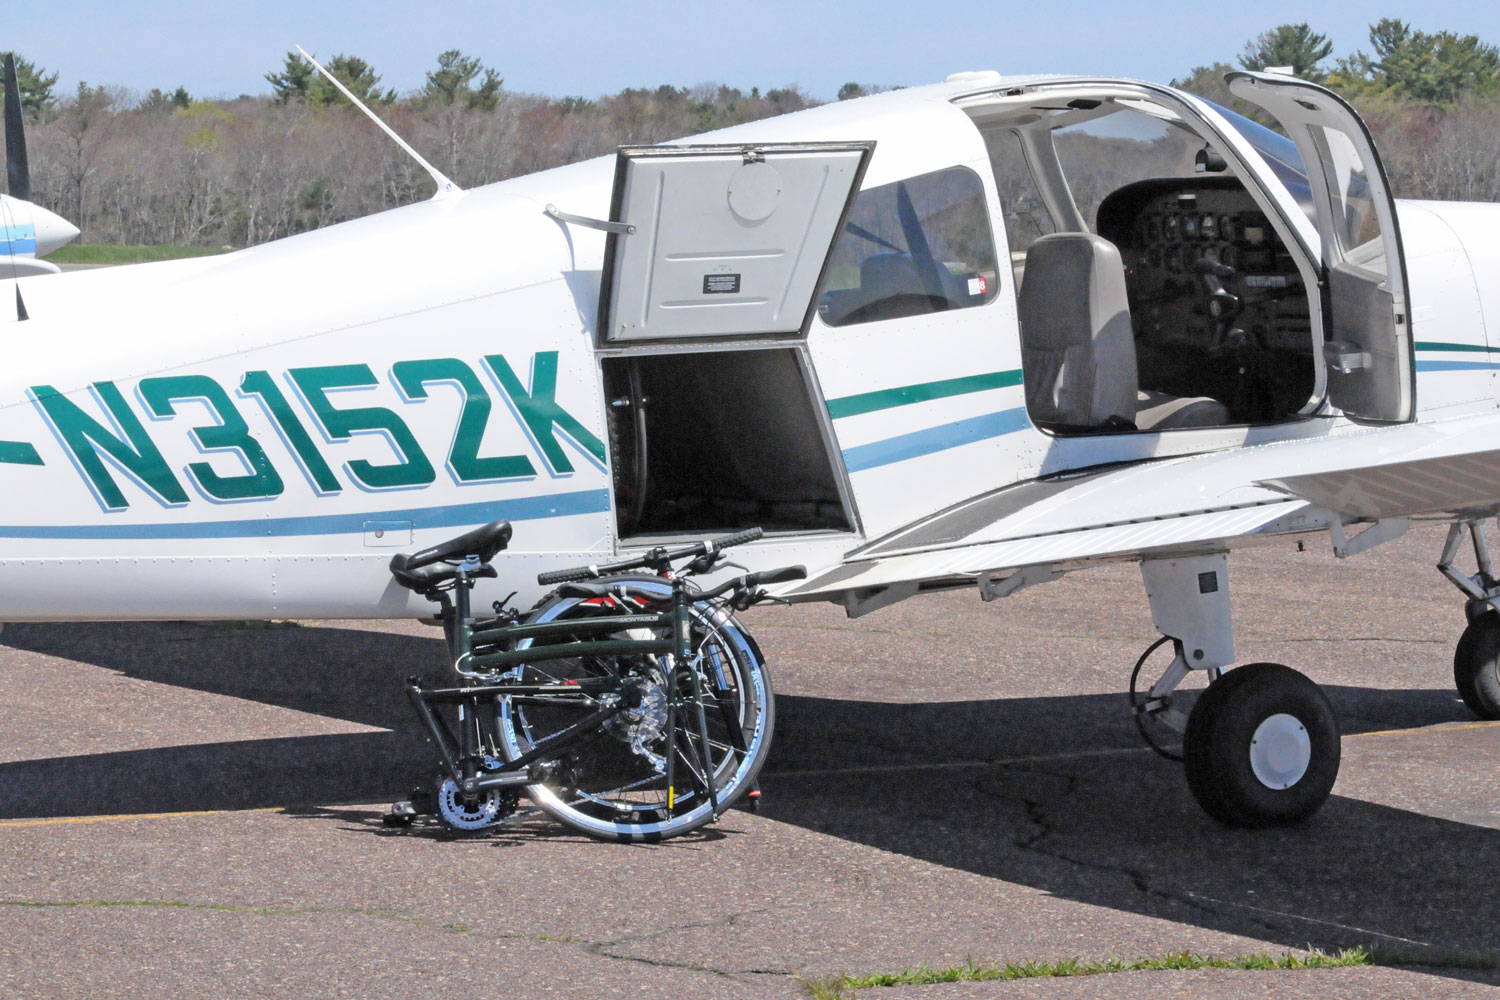 Folding Bikes near Private Plane